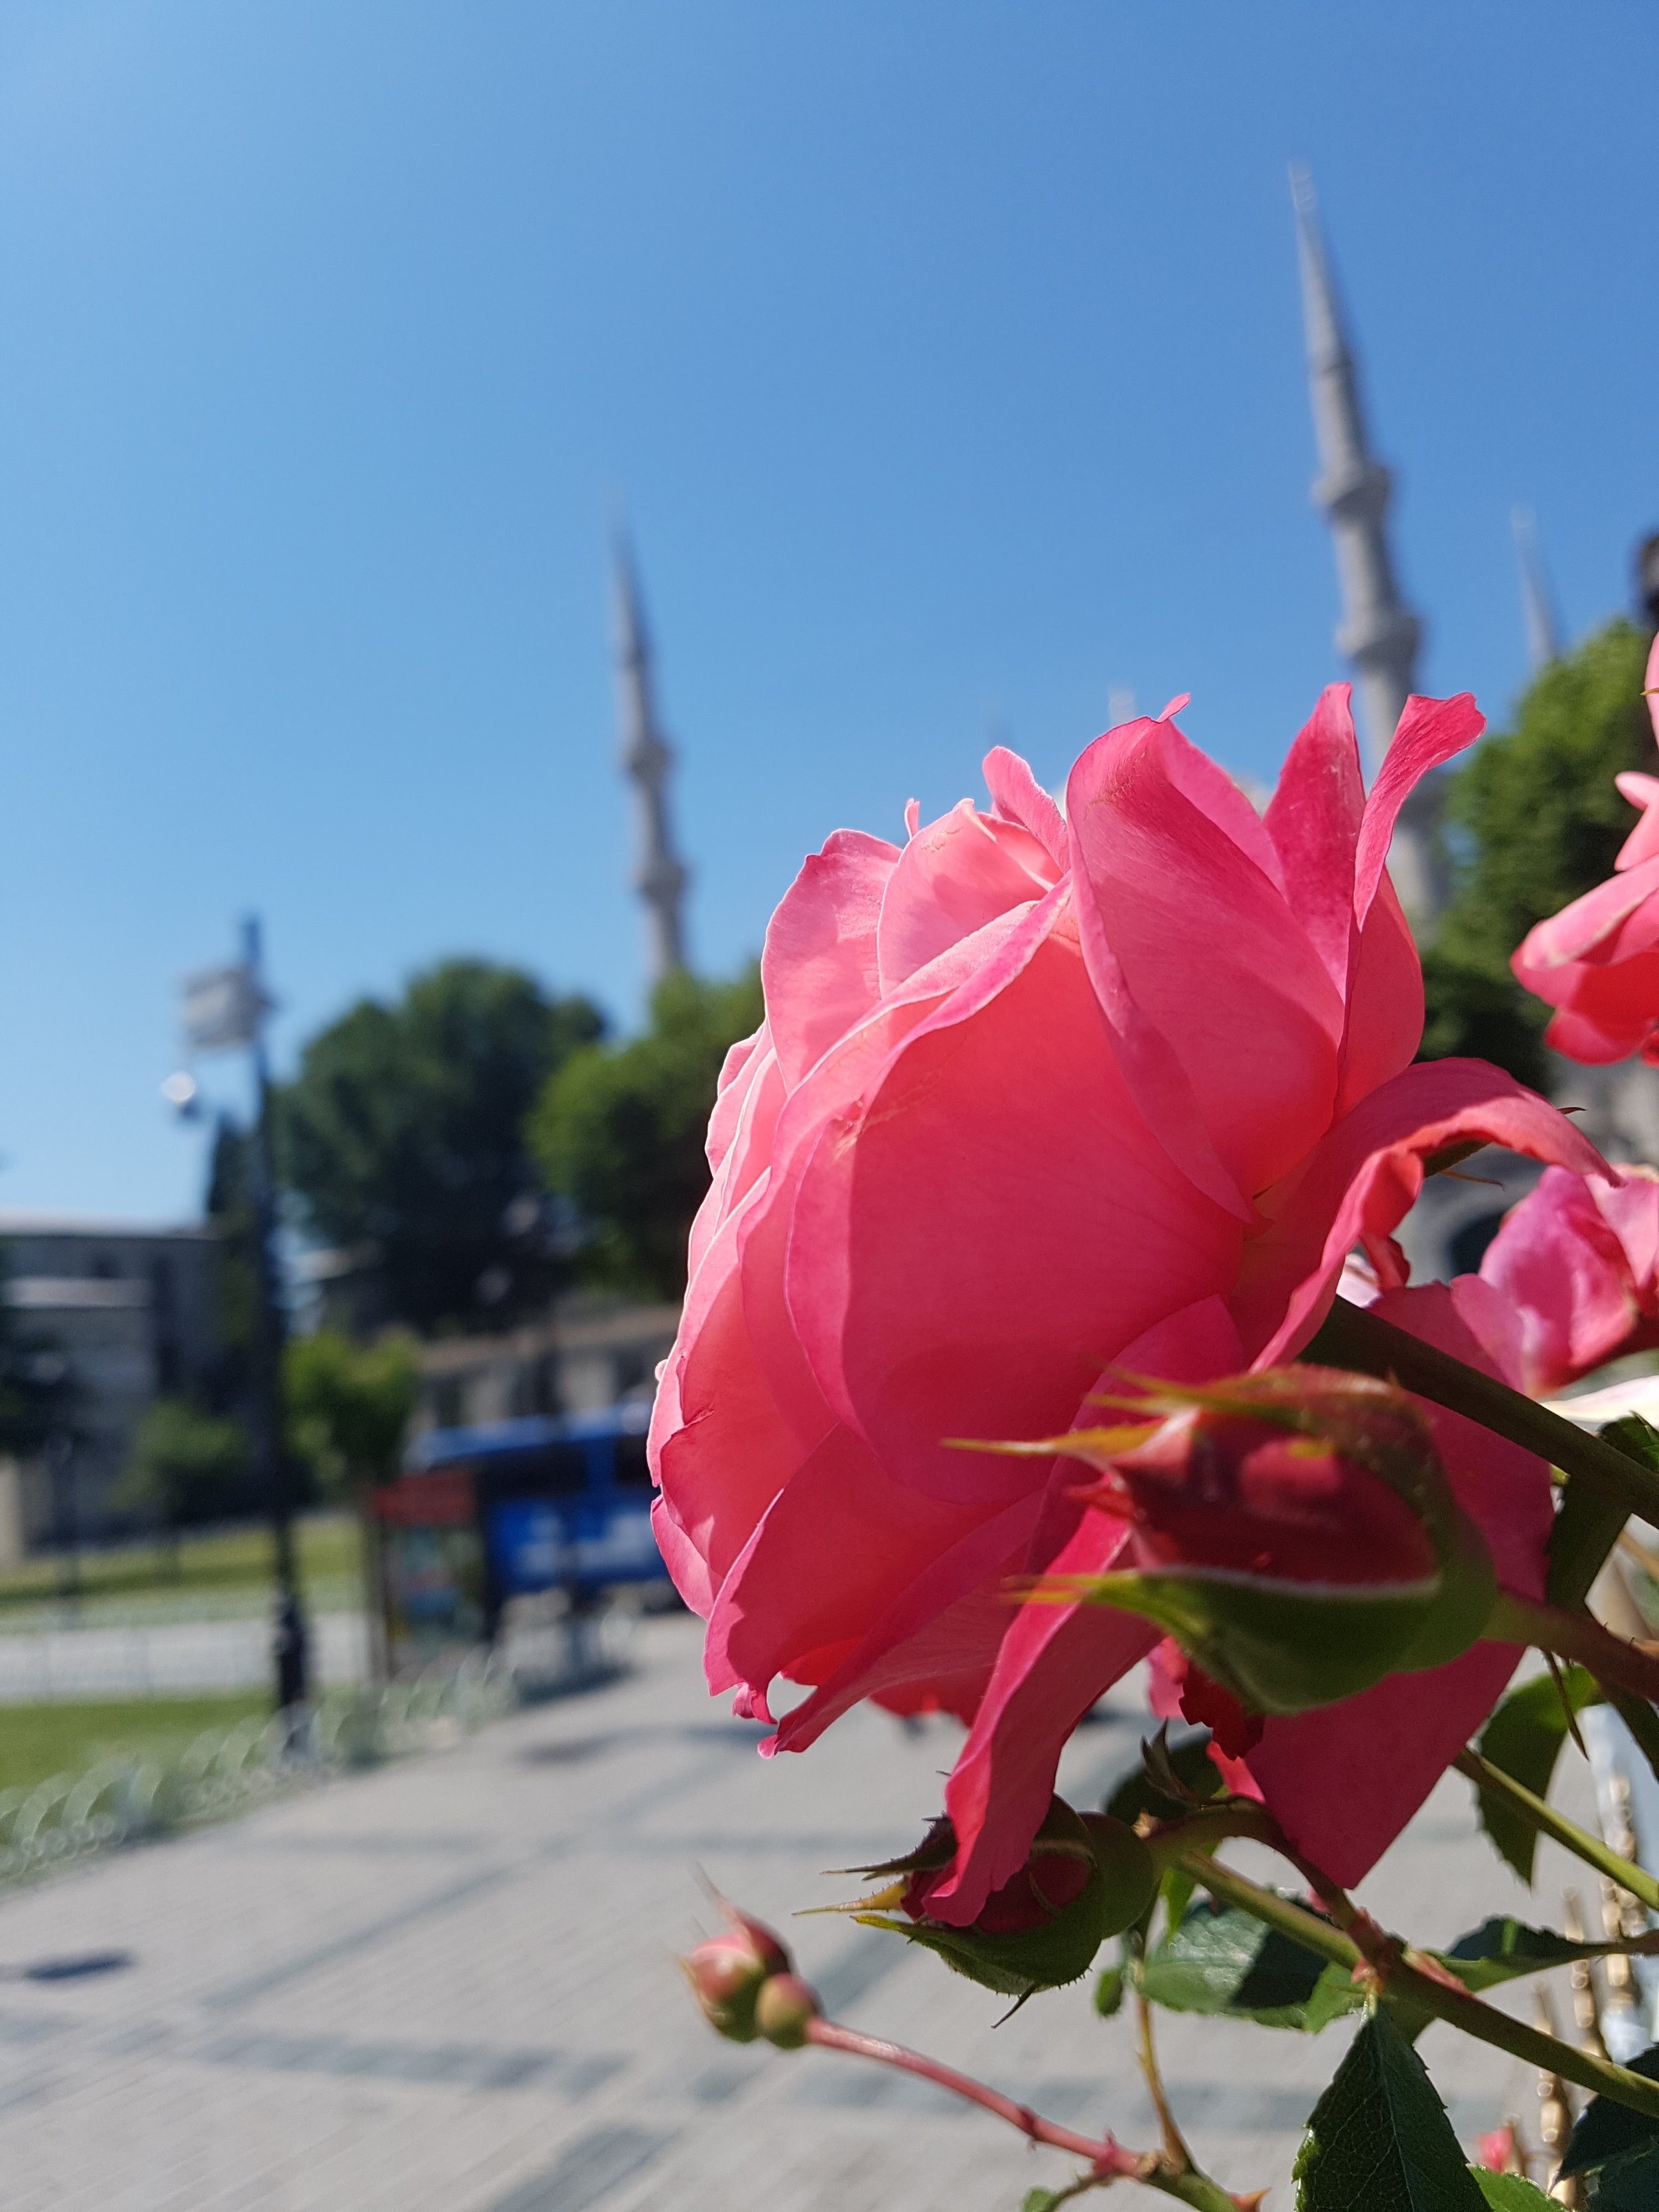 Blue skies and pink roses in Istanbul